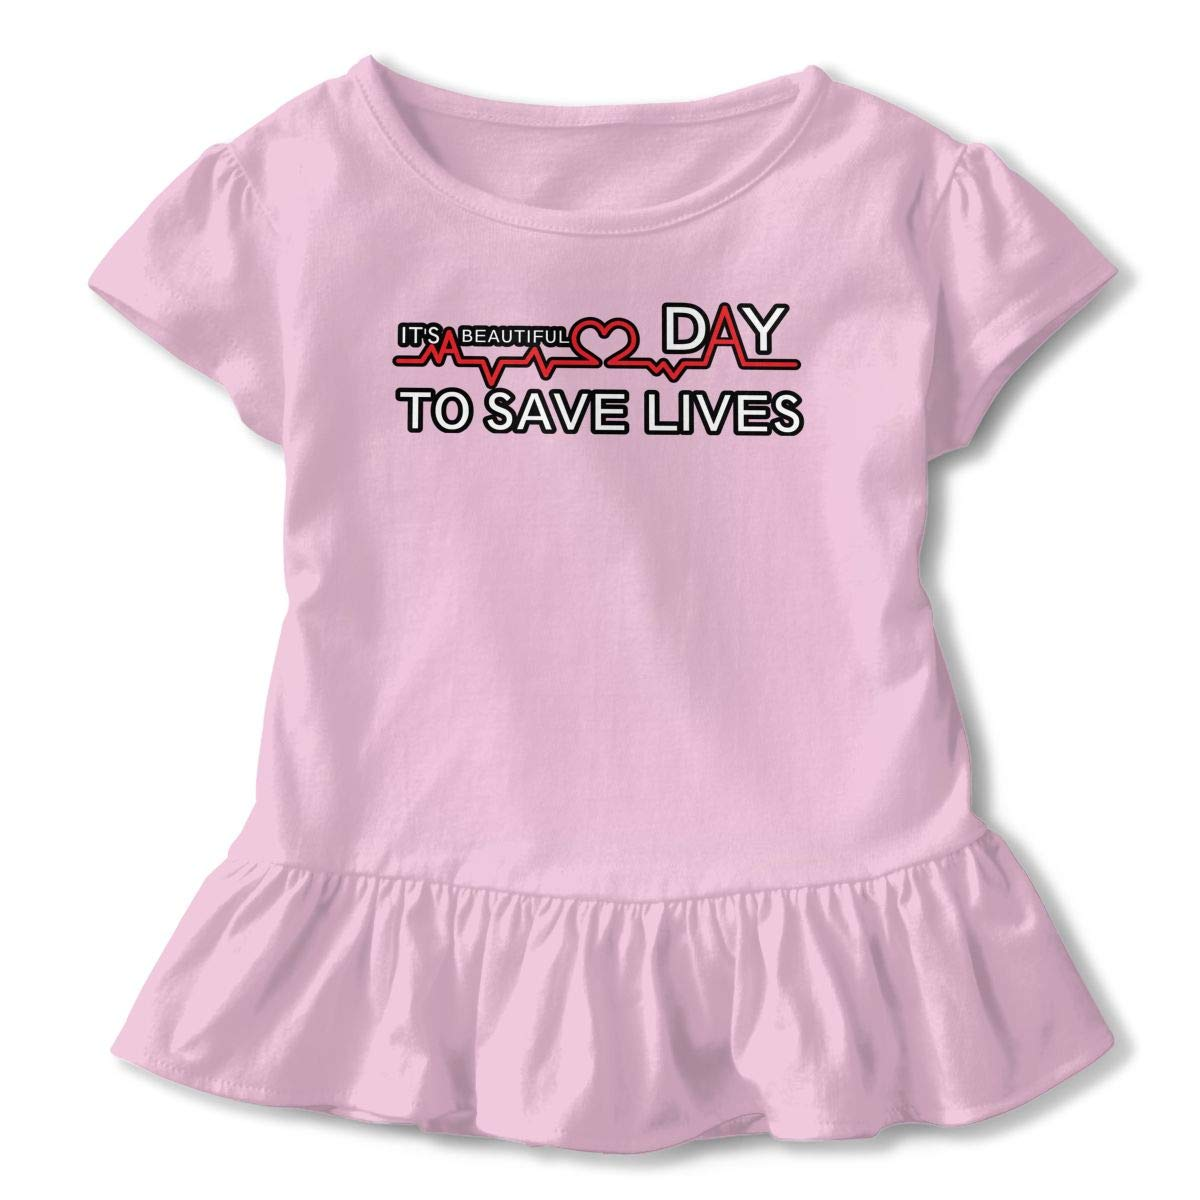 Its A Beautiful Day to Save Lives Toddler Baby Girls Cotton Ruffle Short Sleeve Top Comfortable T-Shirt 2-6T